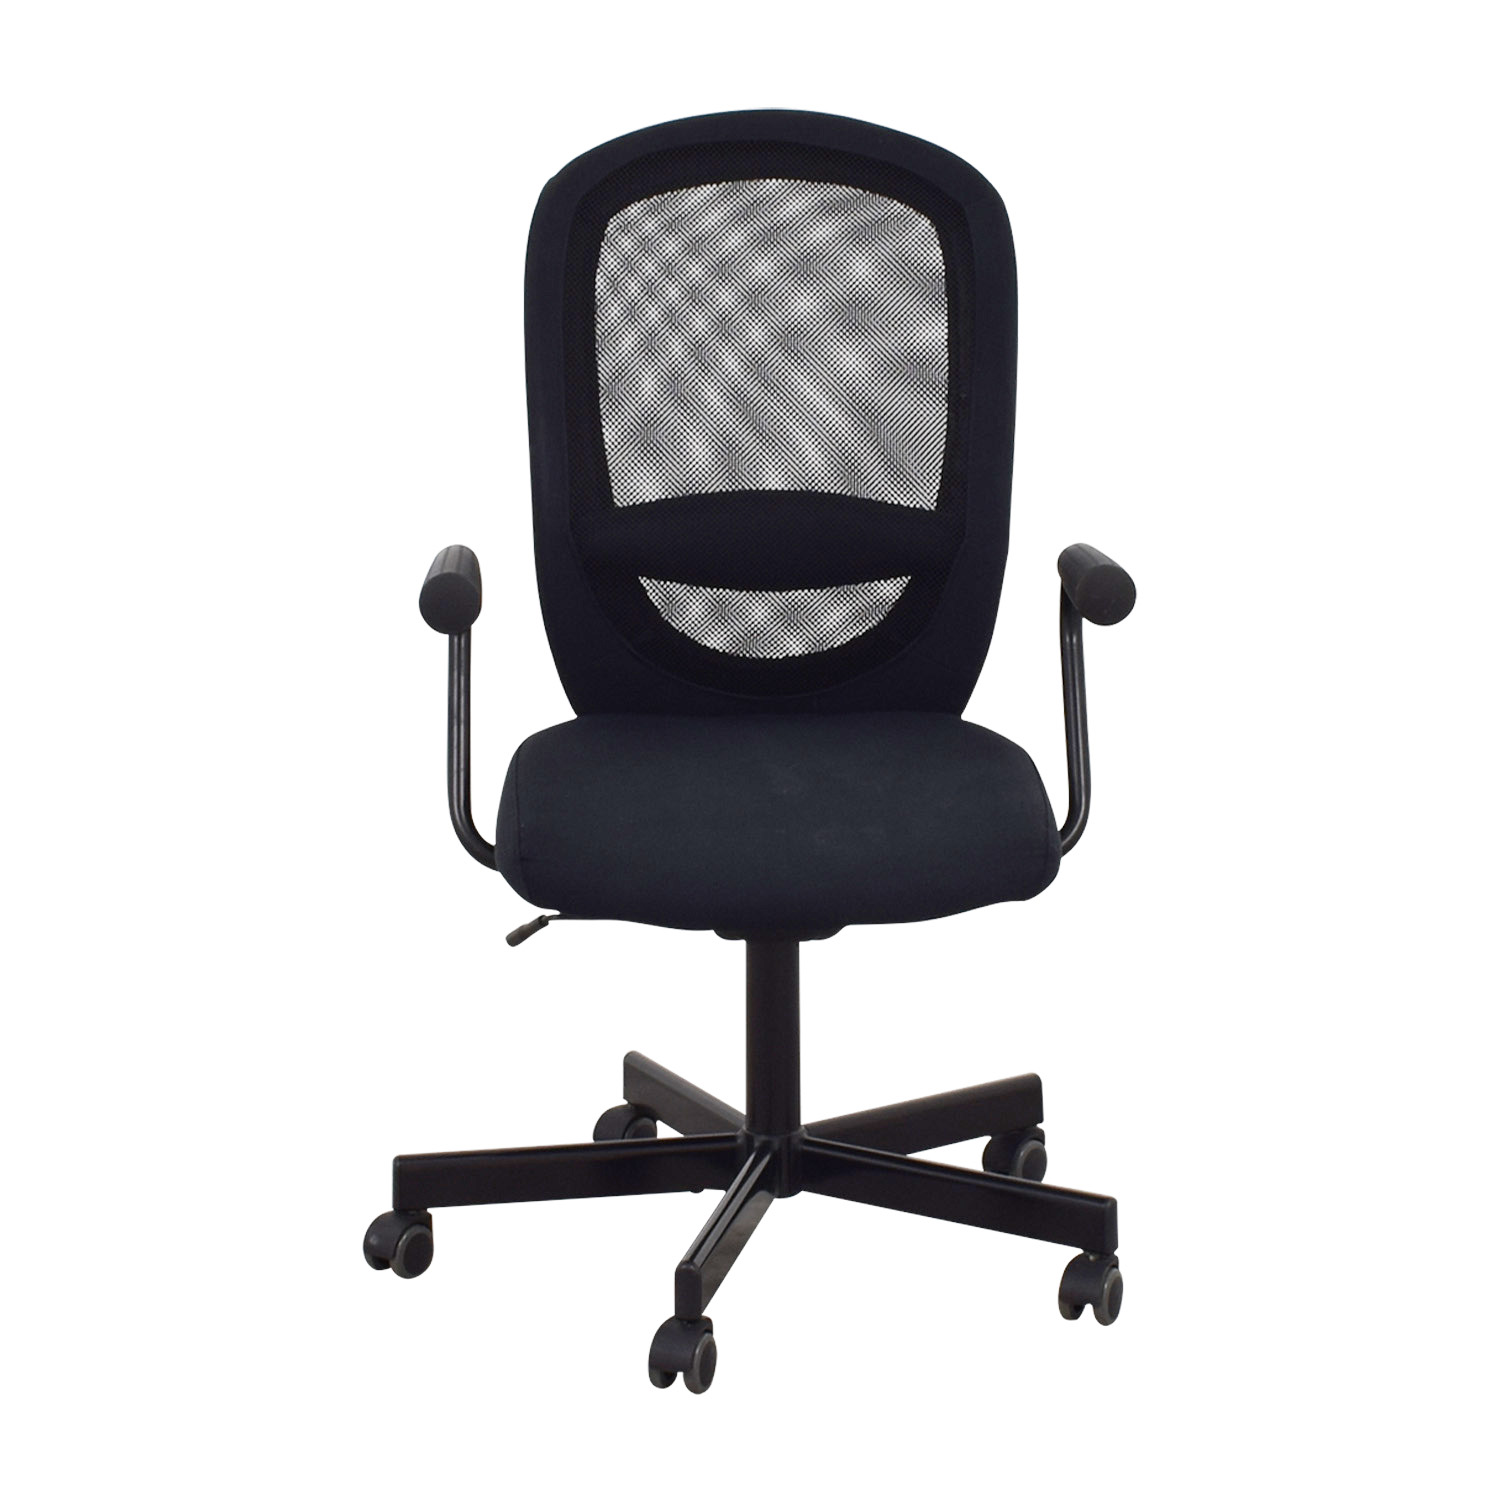 shop Flitan Nominell Swivel Chair with Armrests Flitan Nominell Home Office Chairs